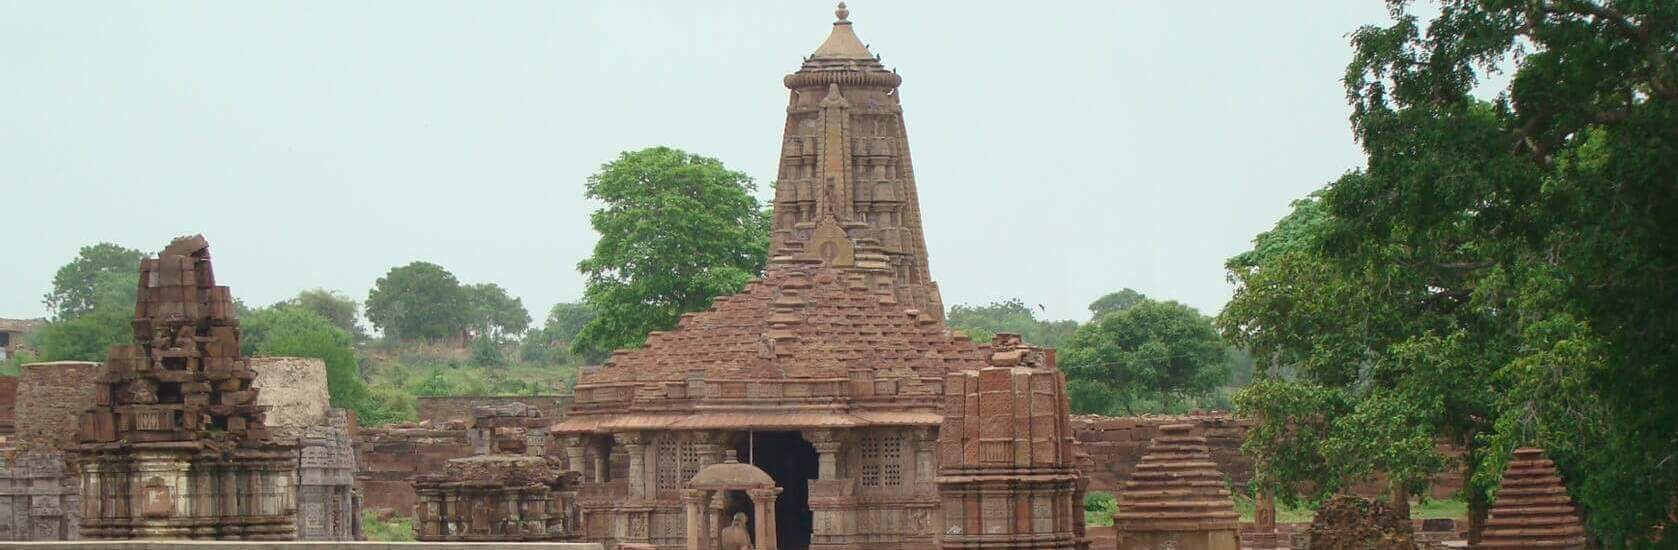 Bhilwara District: History, Geography, Places to See